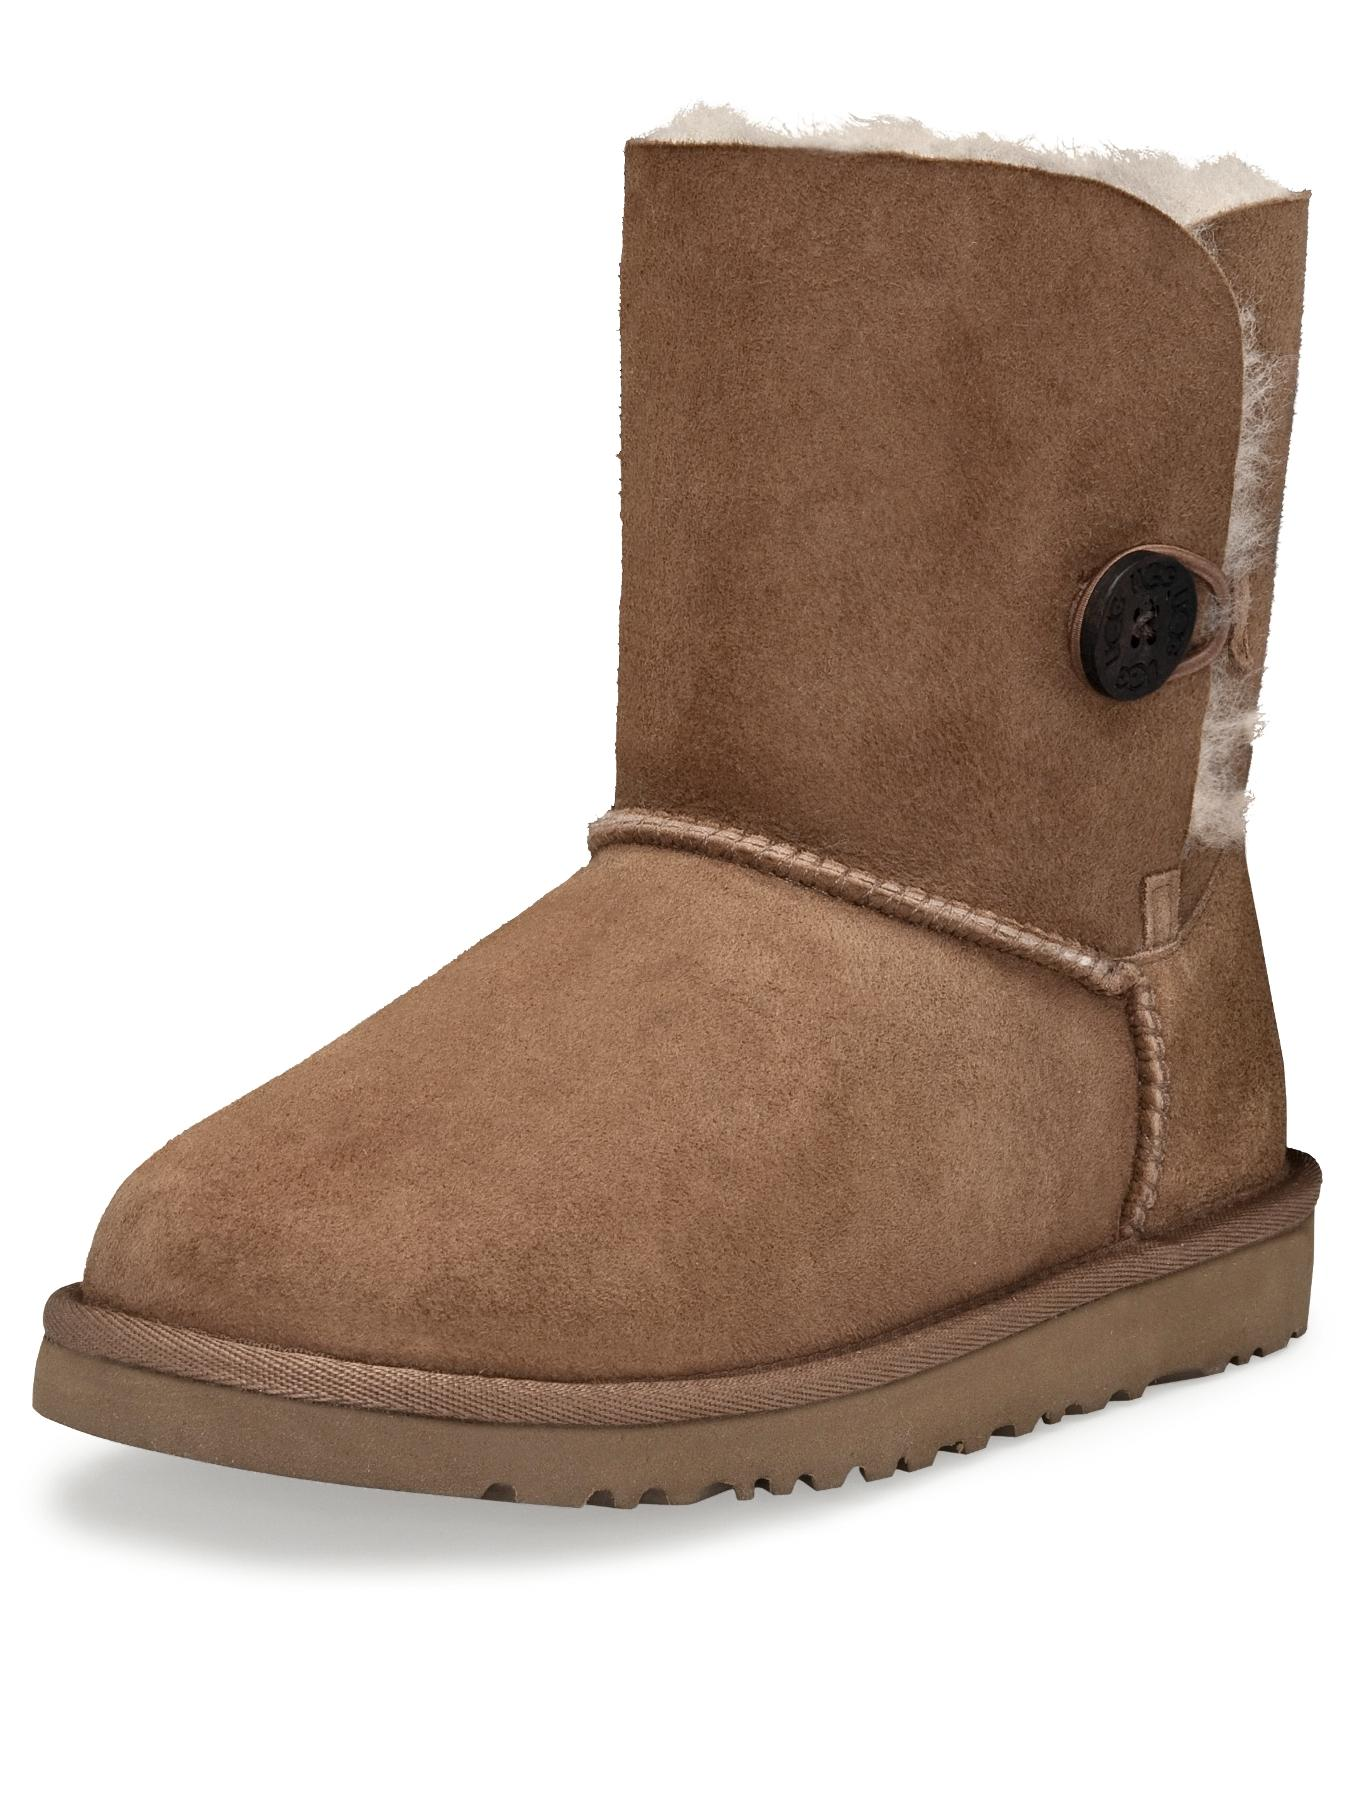 Online shoes for women. Best place to buy ugg boots